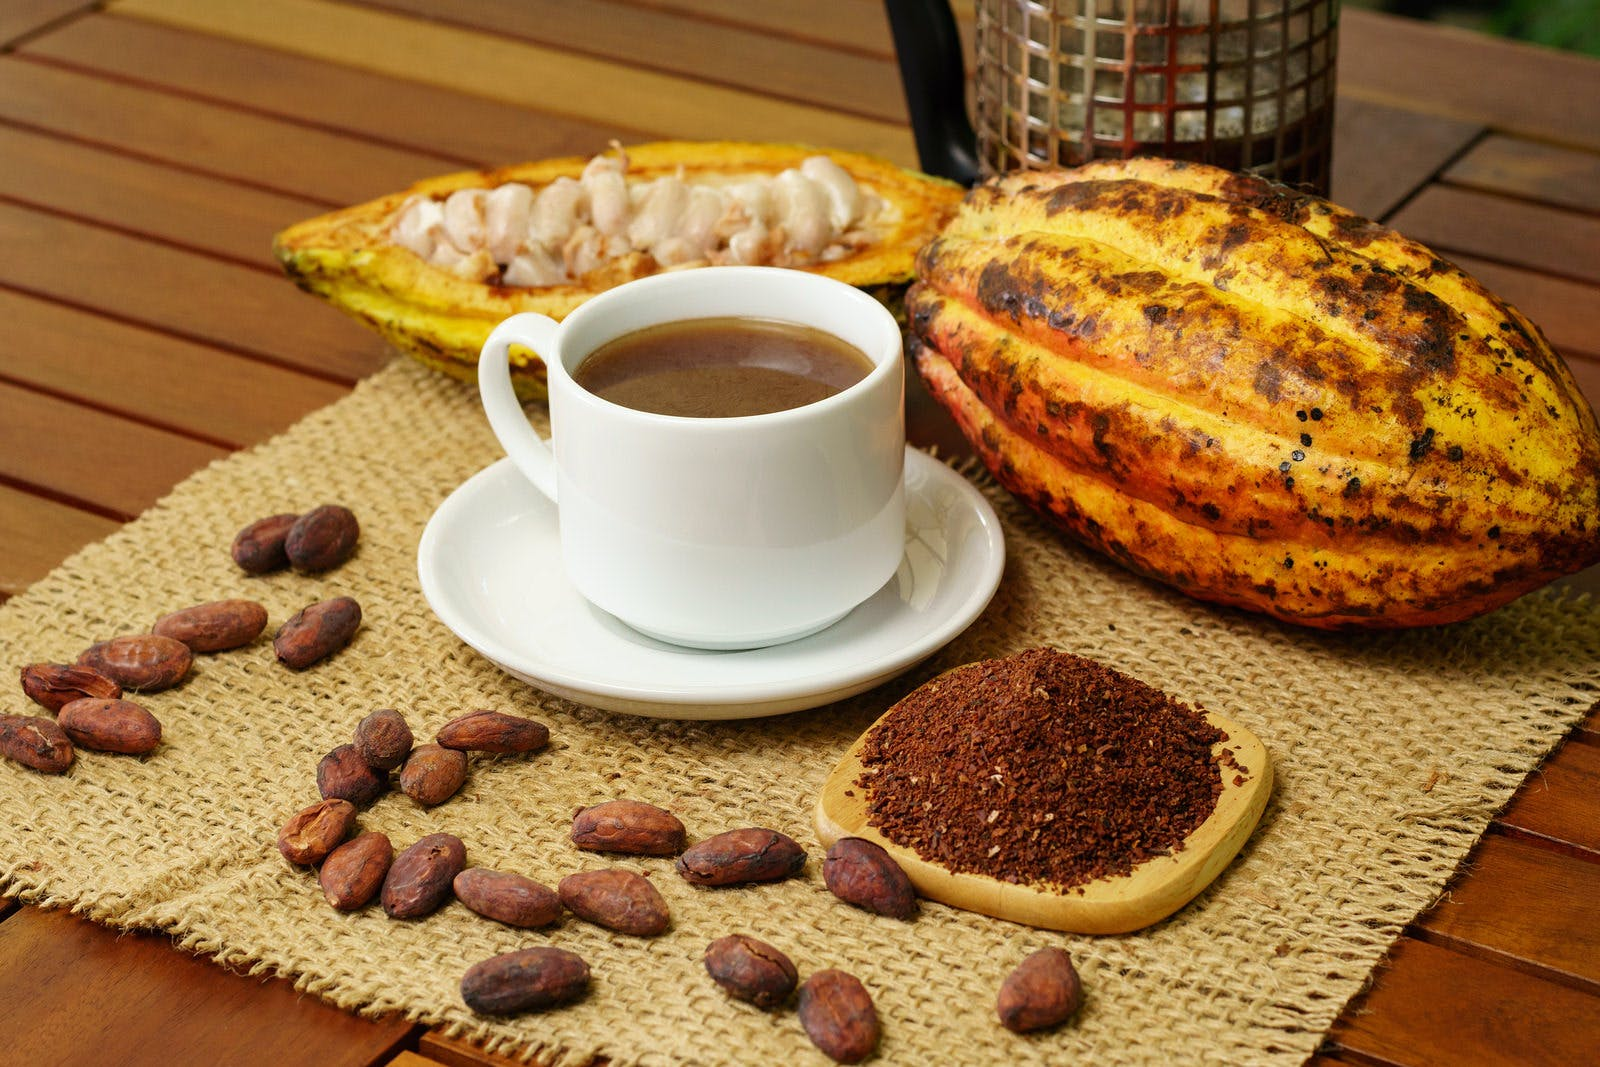 Hot brewed cacao drink, raw cocoa fruit, cacao beans, nibs on table